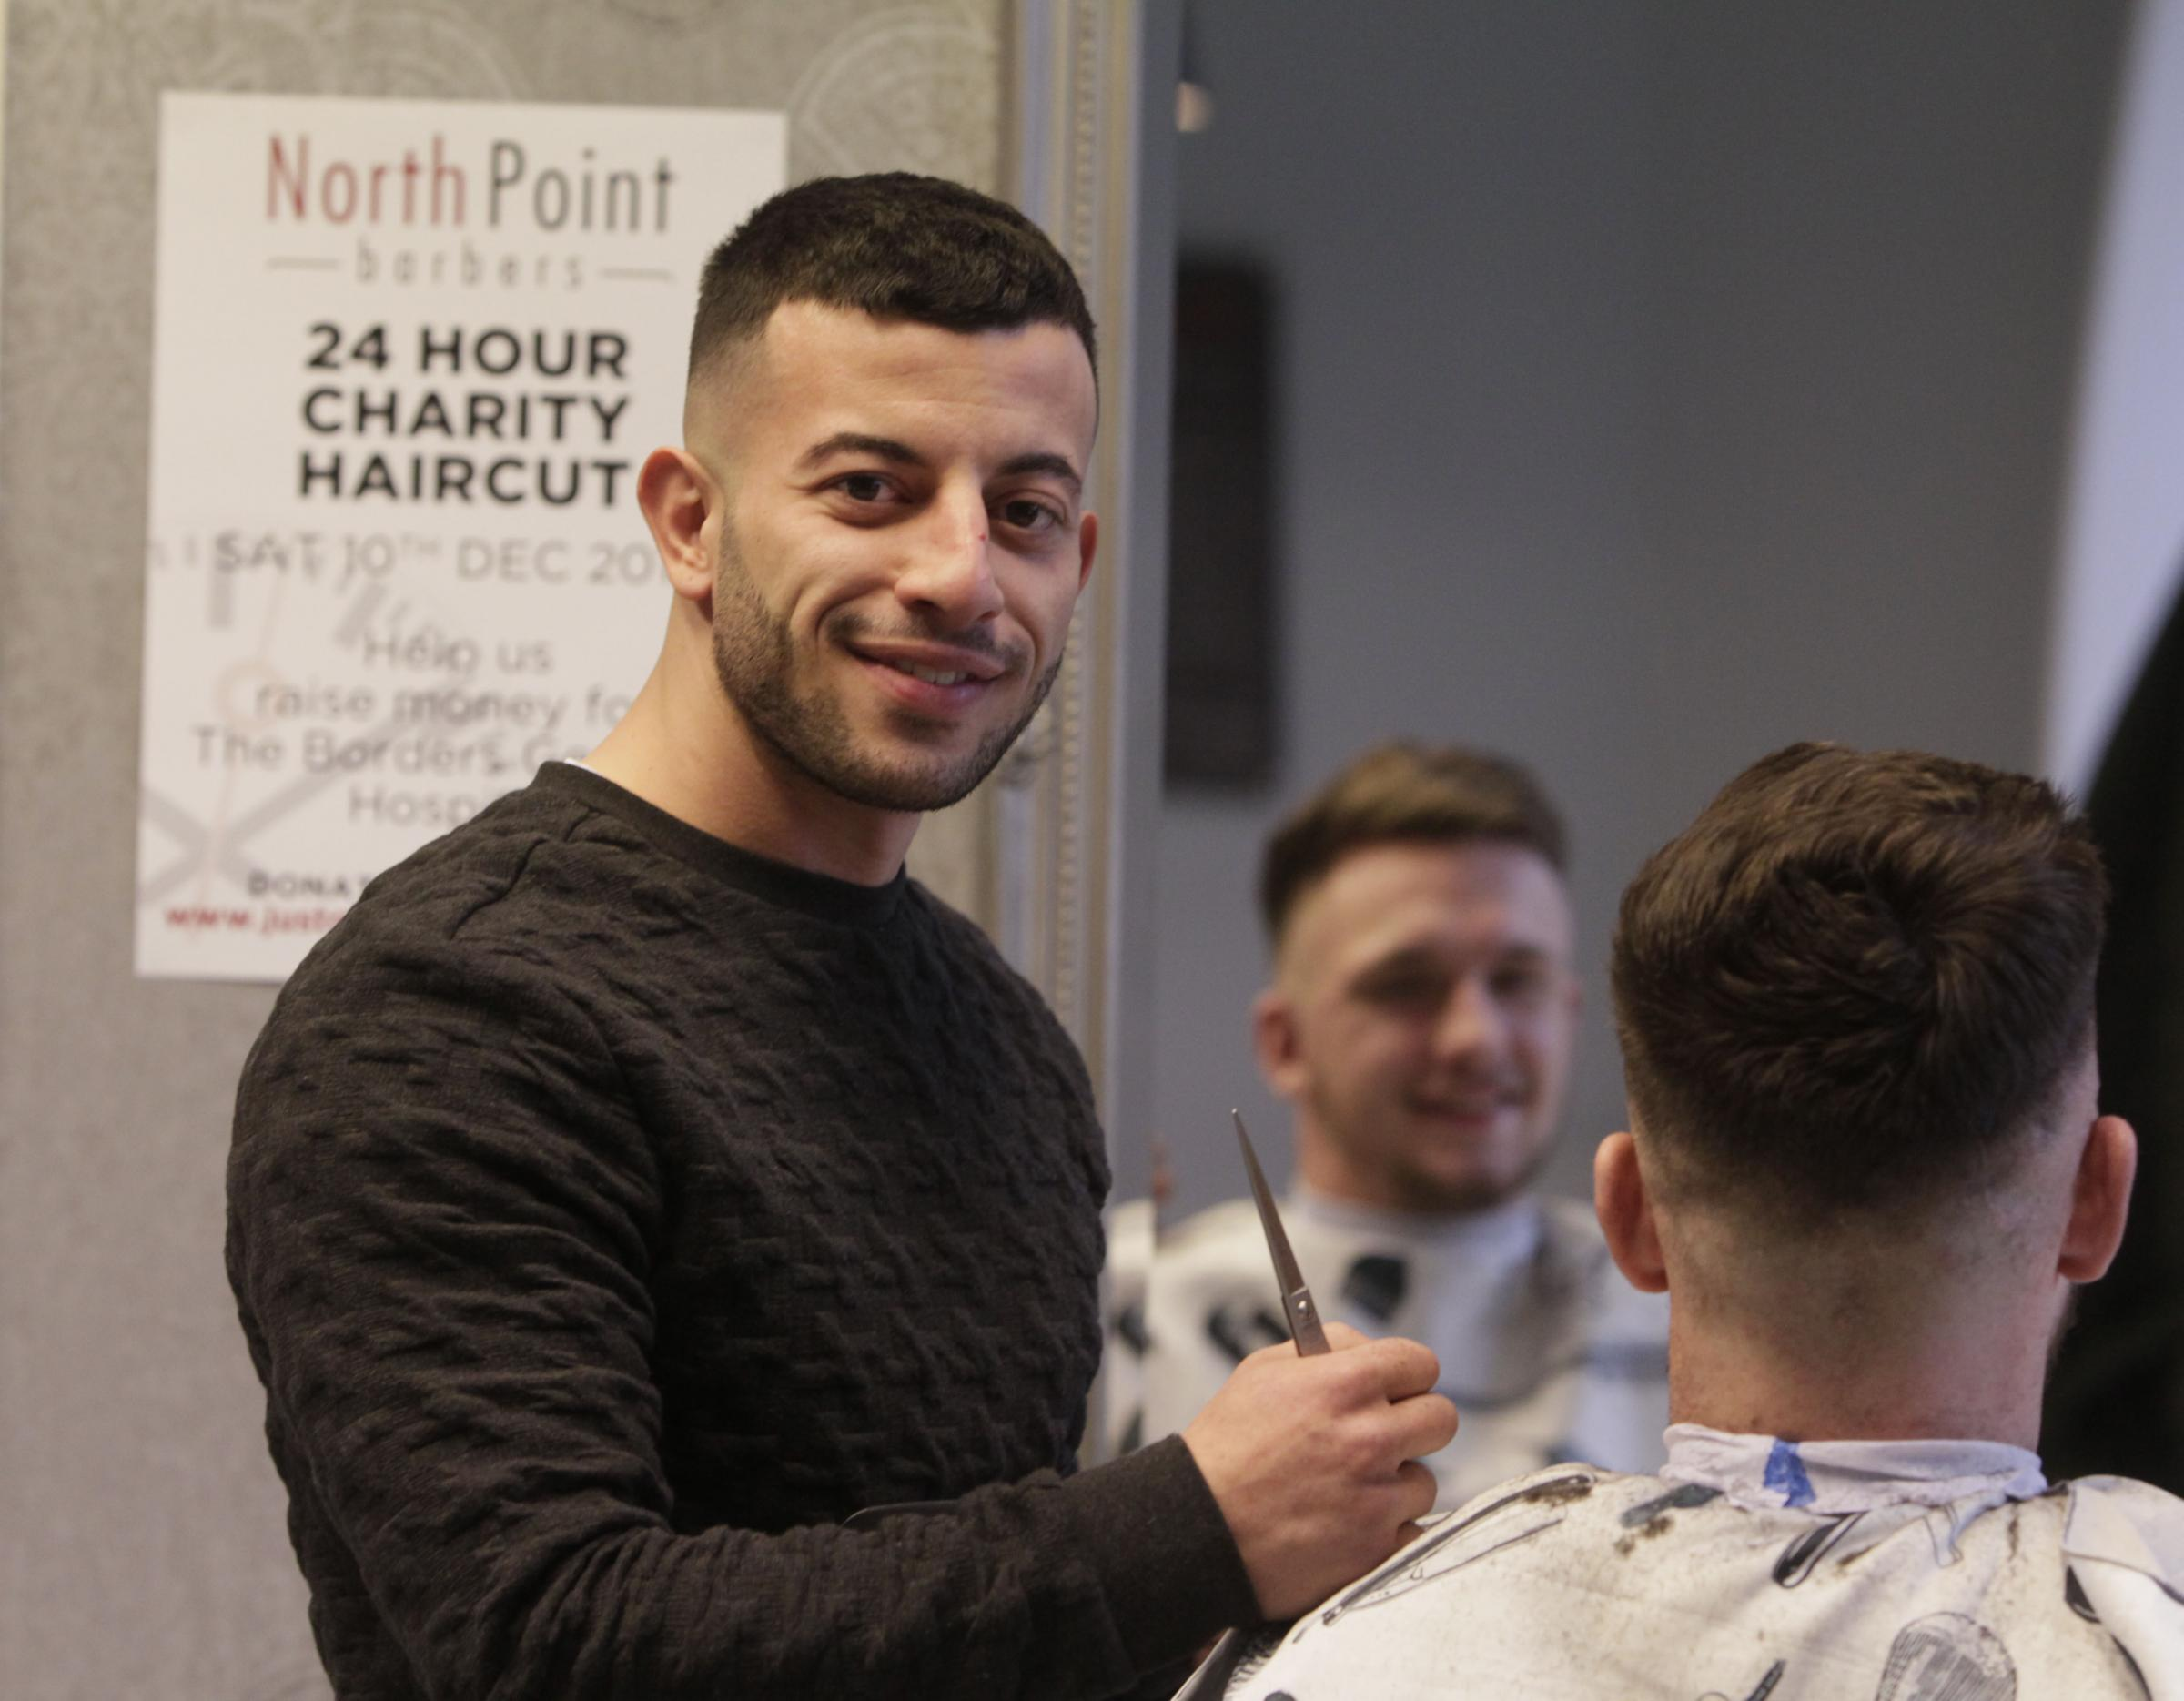 Peebles Barber Takes On 24 Hour Charity Haircut Challenge For Bgh